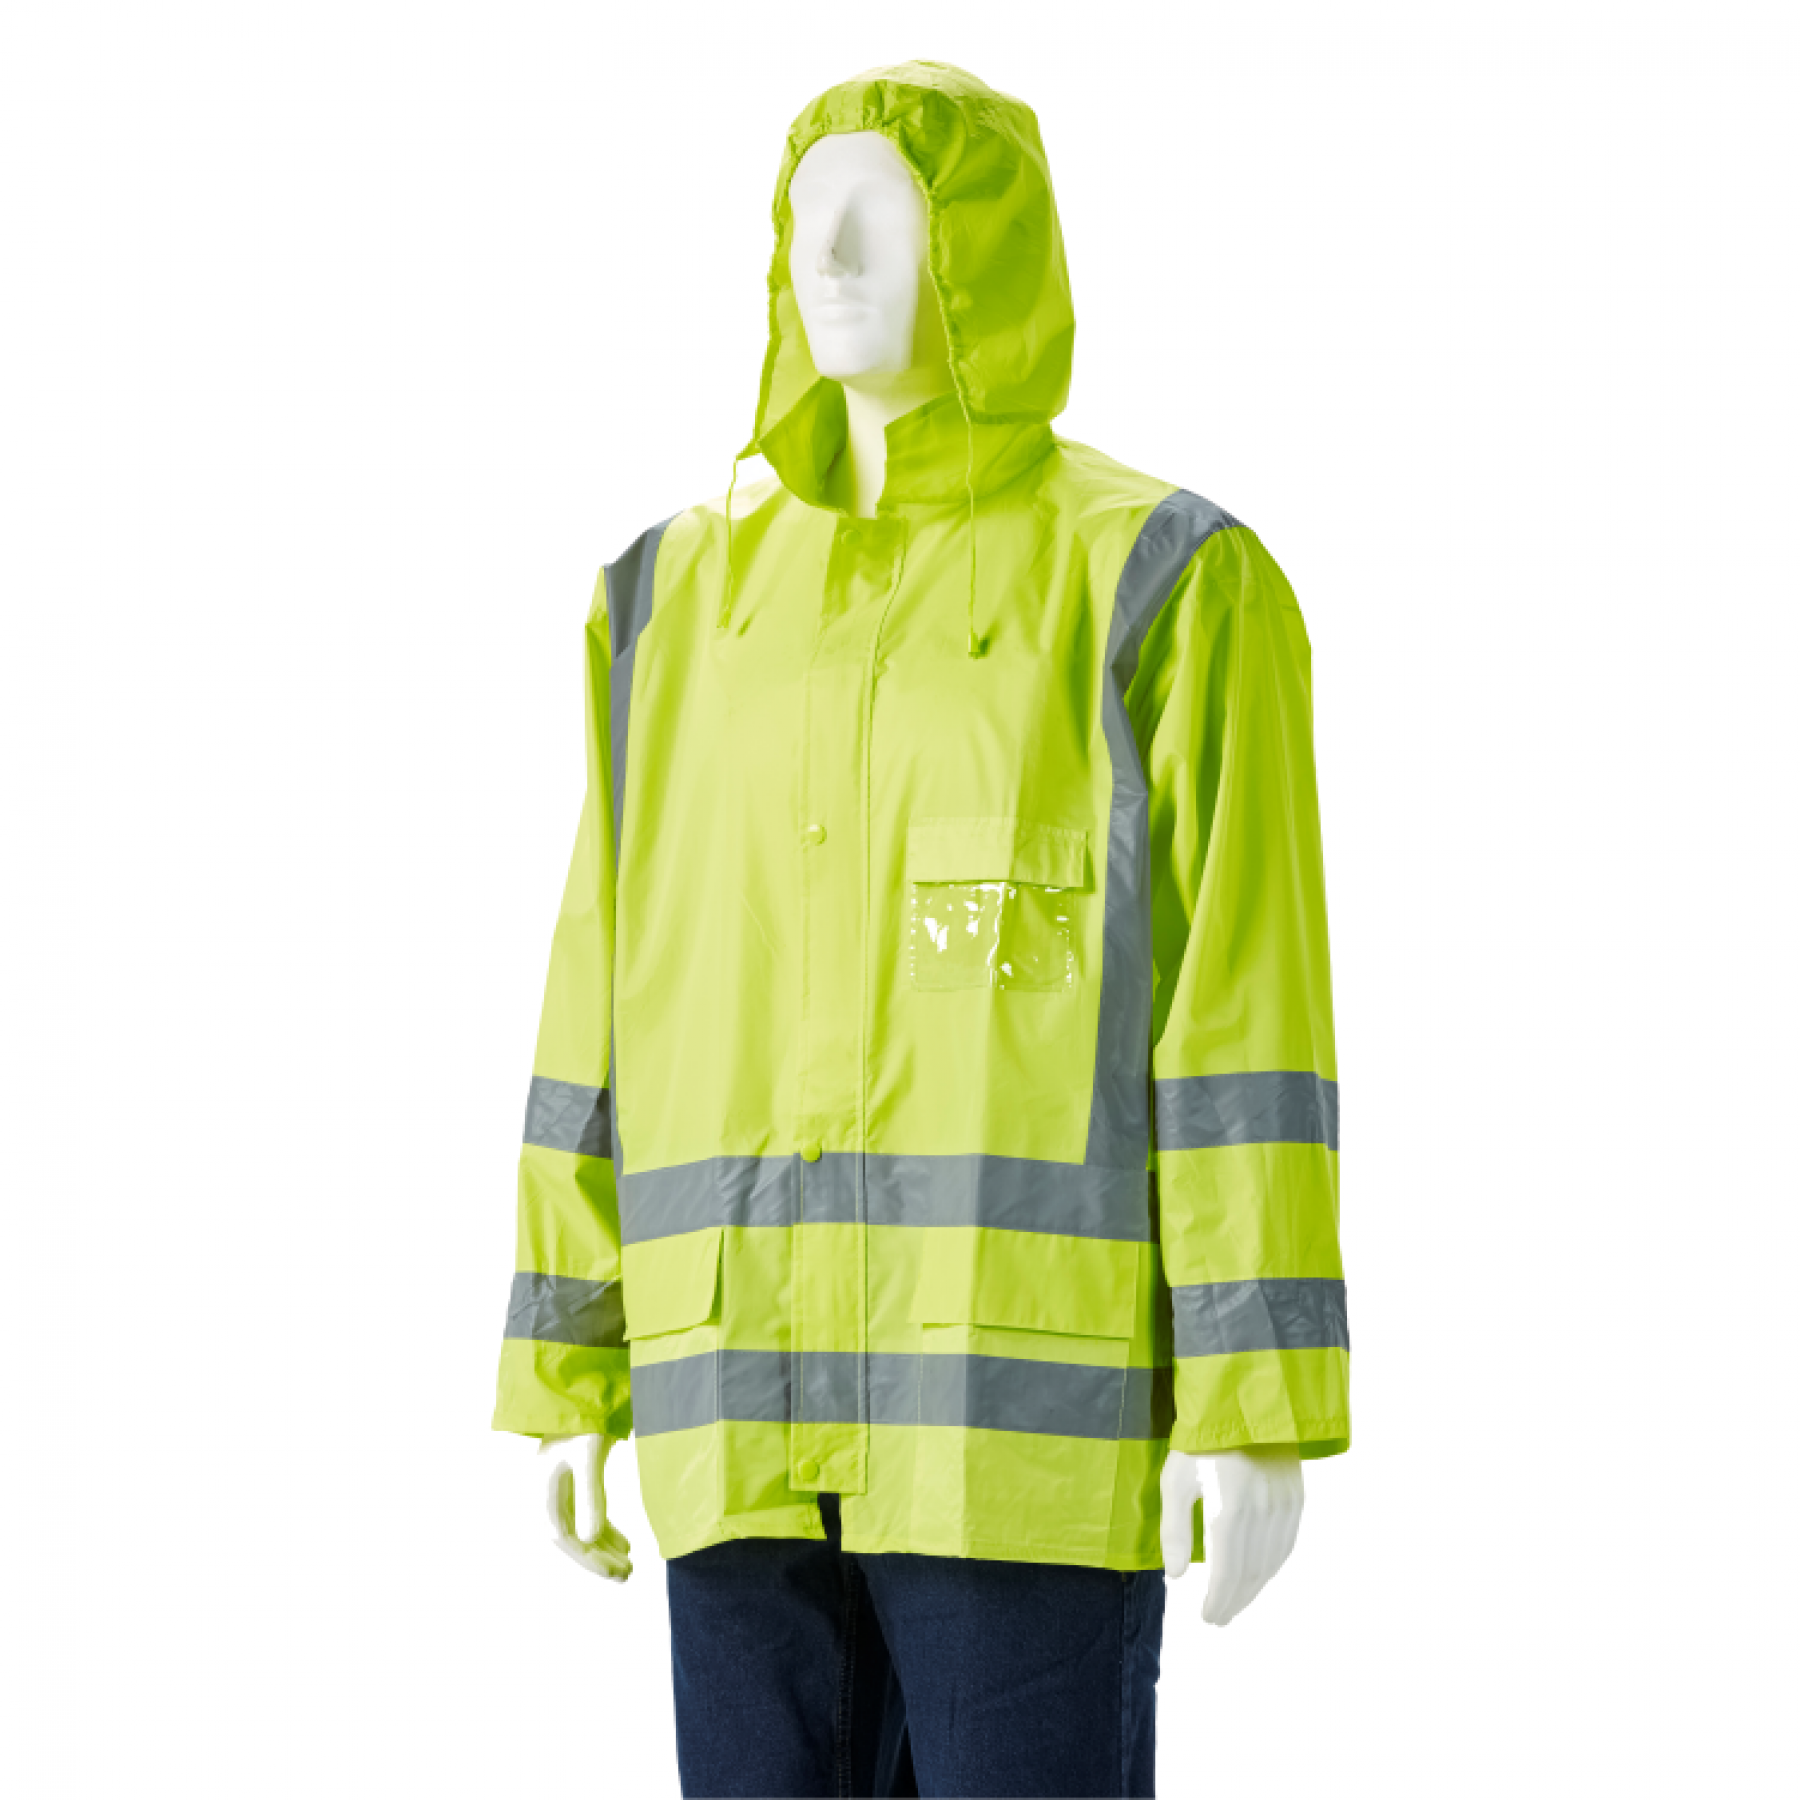 Lime High Viz Jacket, 2x Large